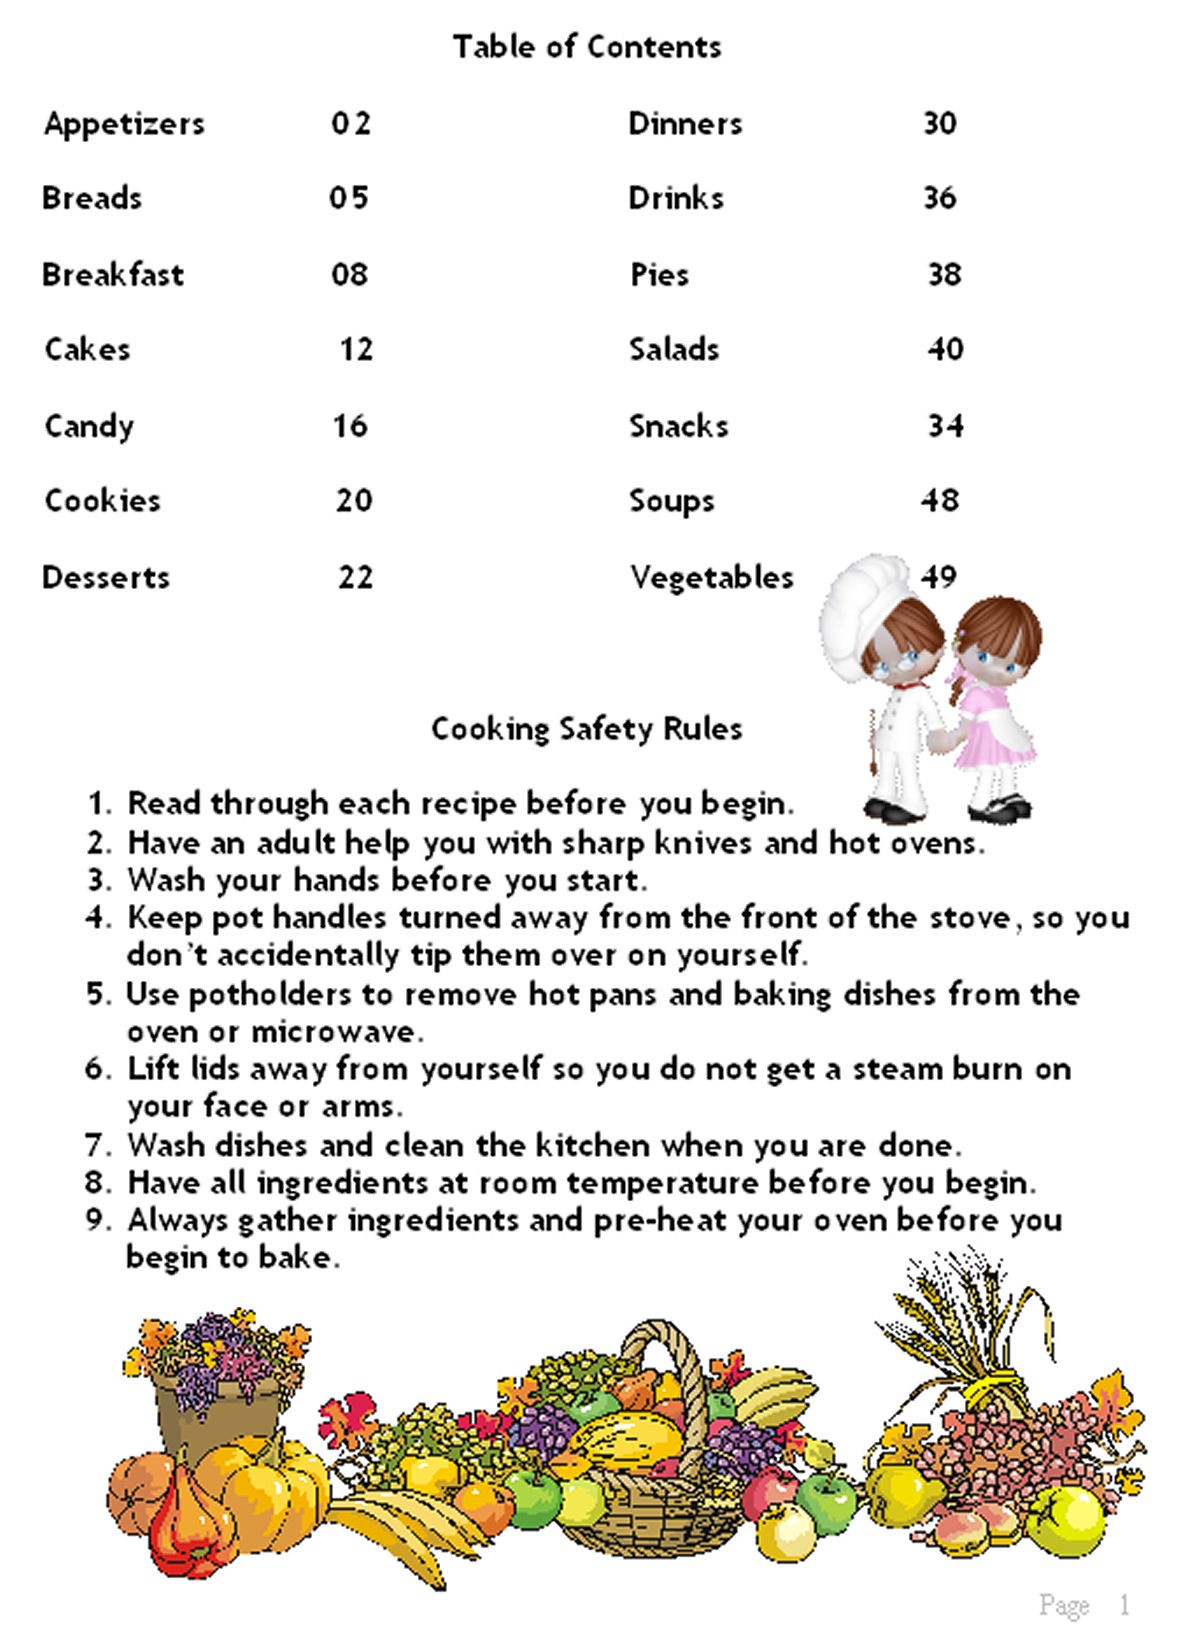 Sample Page for Volume 2: Kids in the Kitchen Cookbook